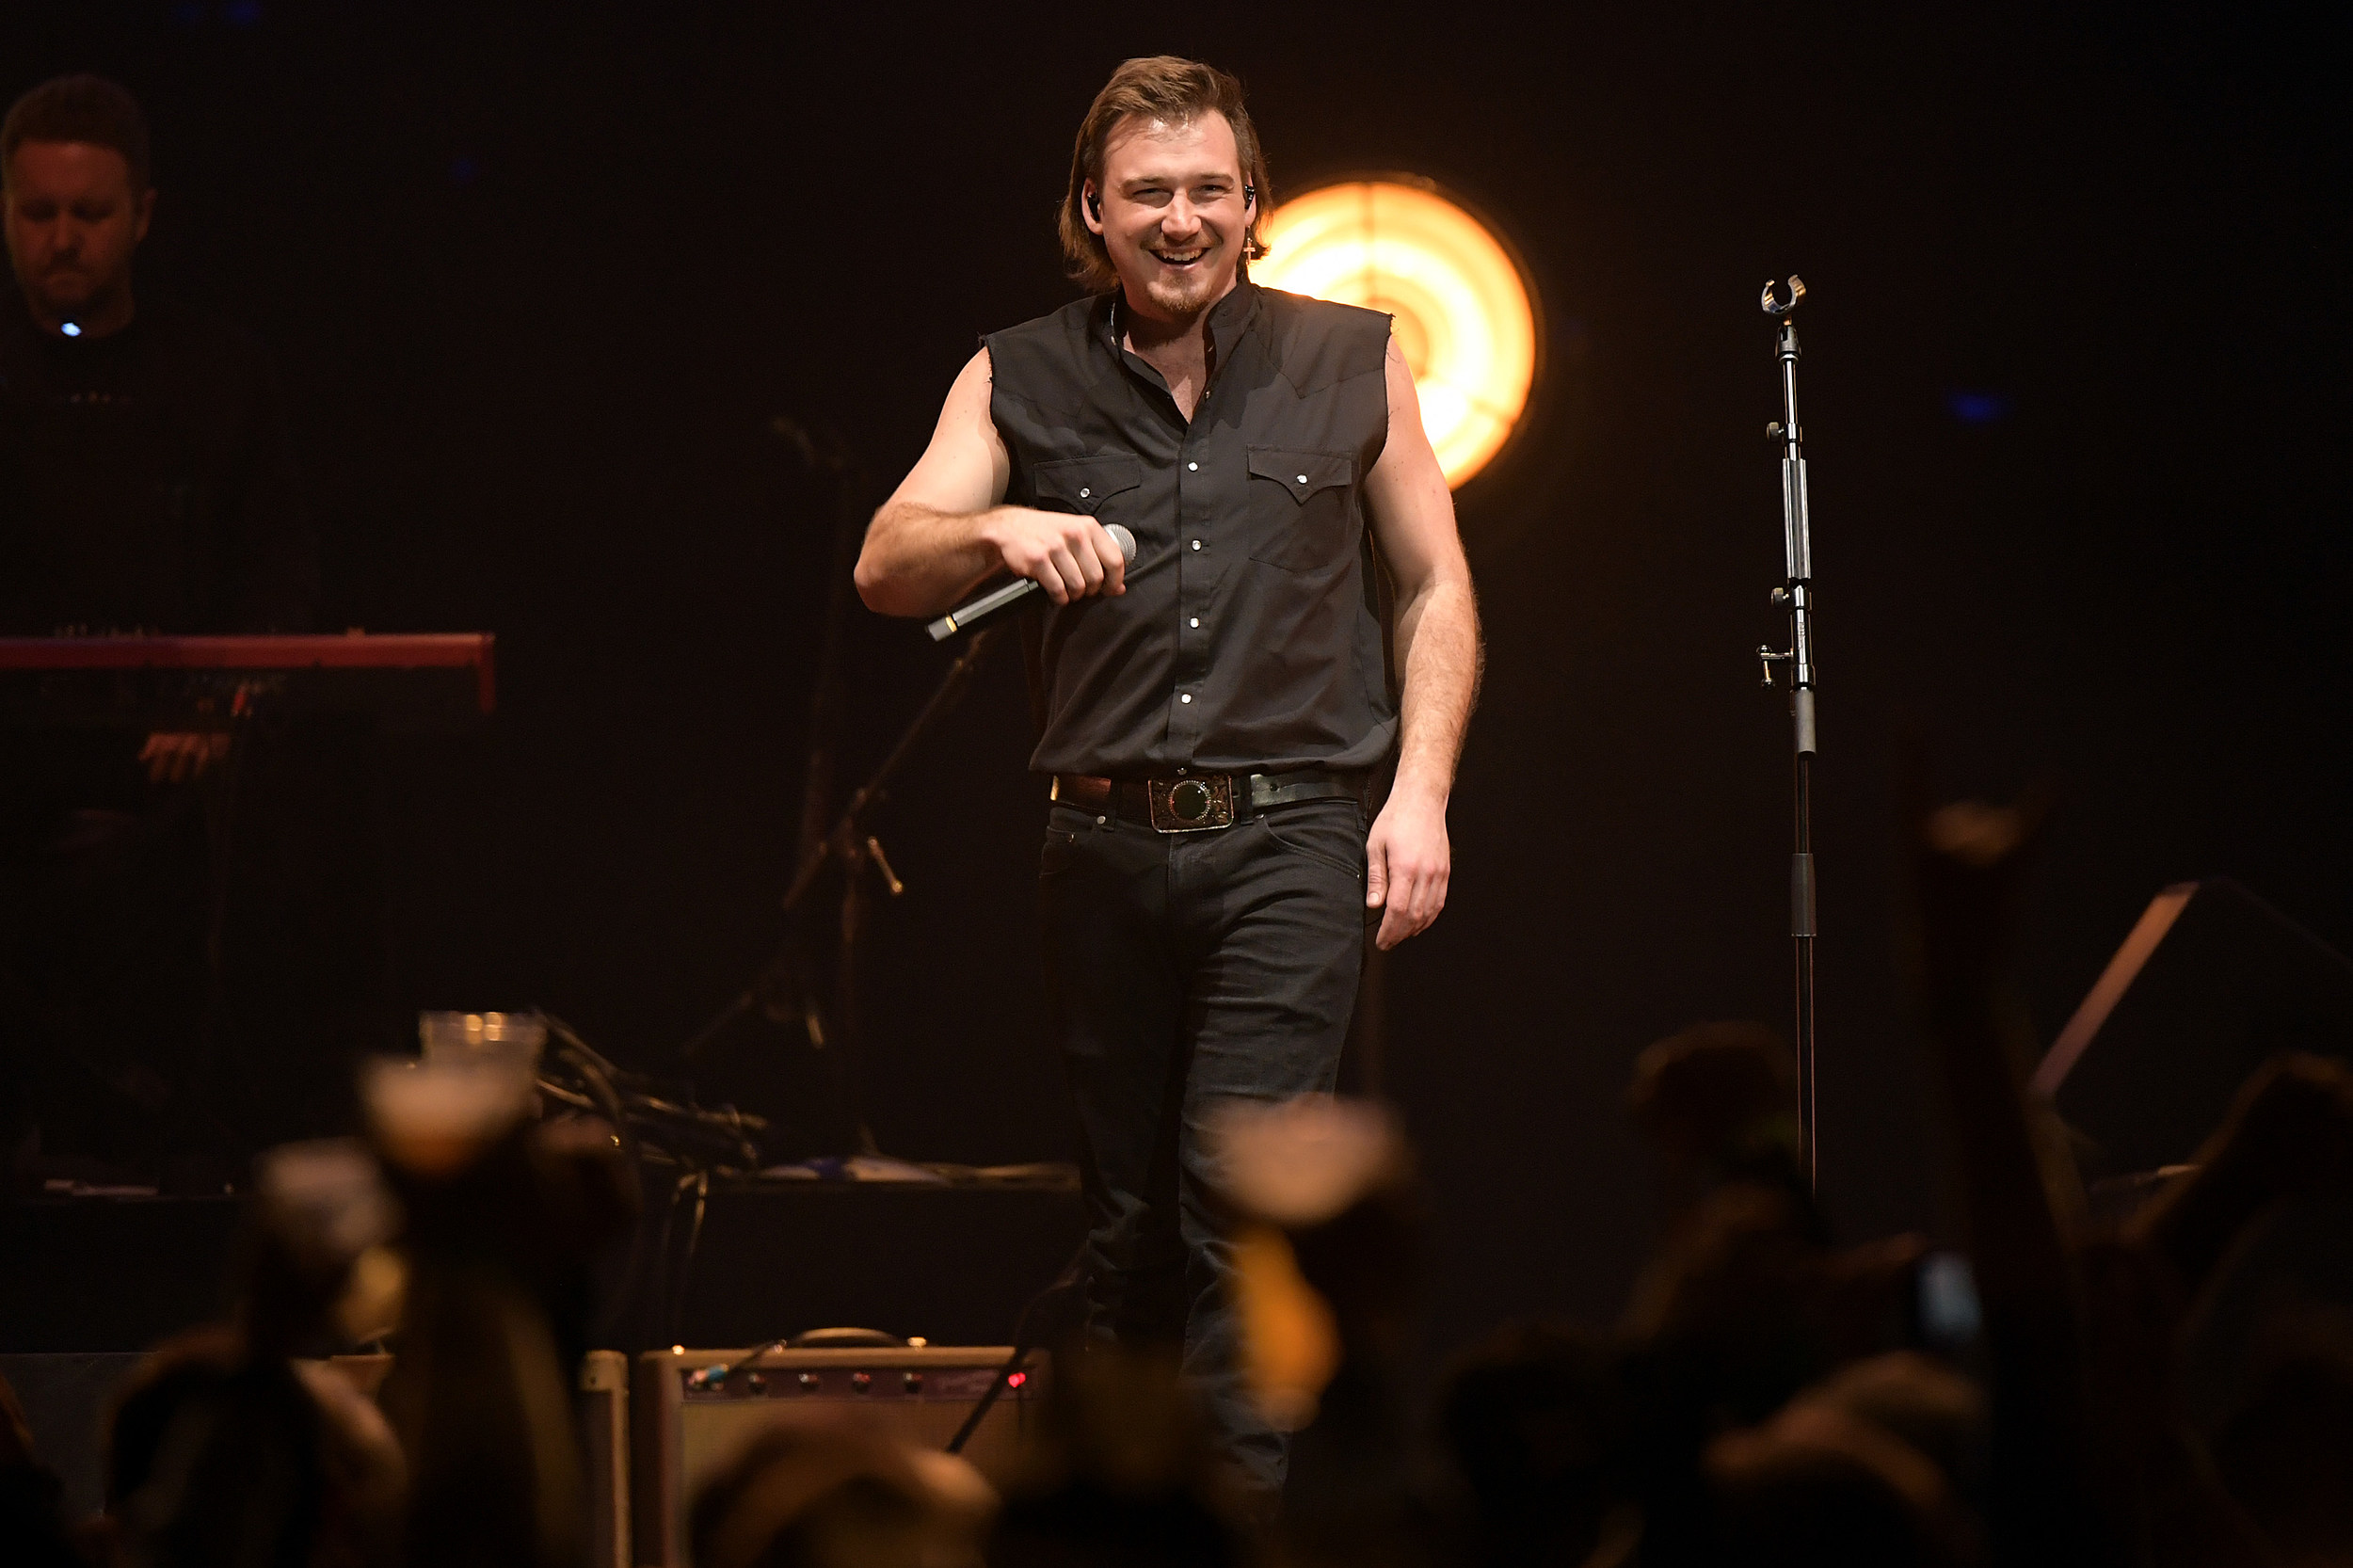 5 Things You Might Not Know About Morgan Wallen